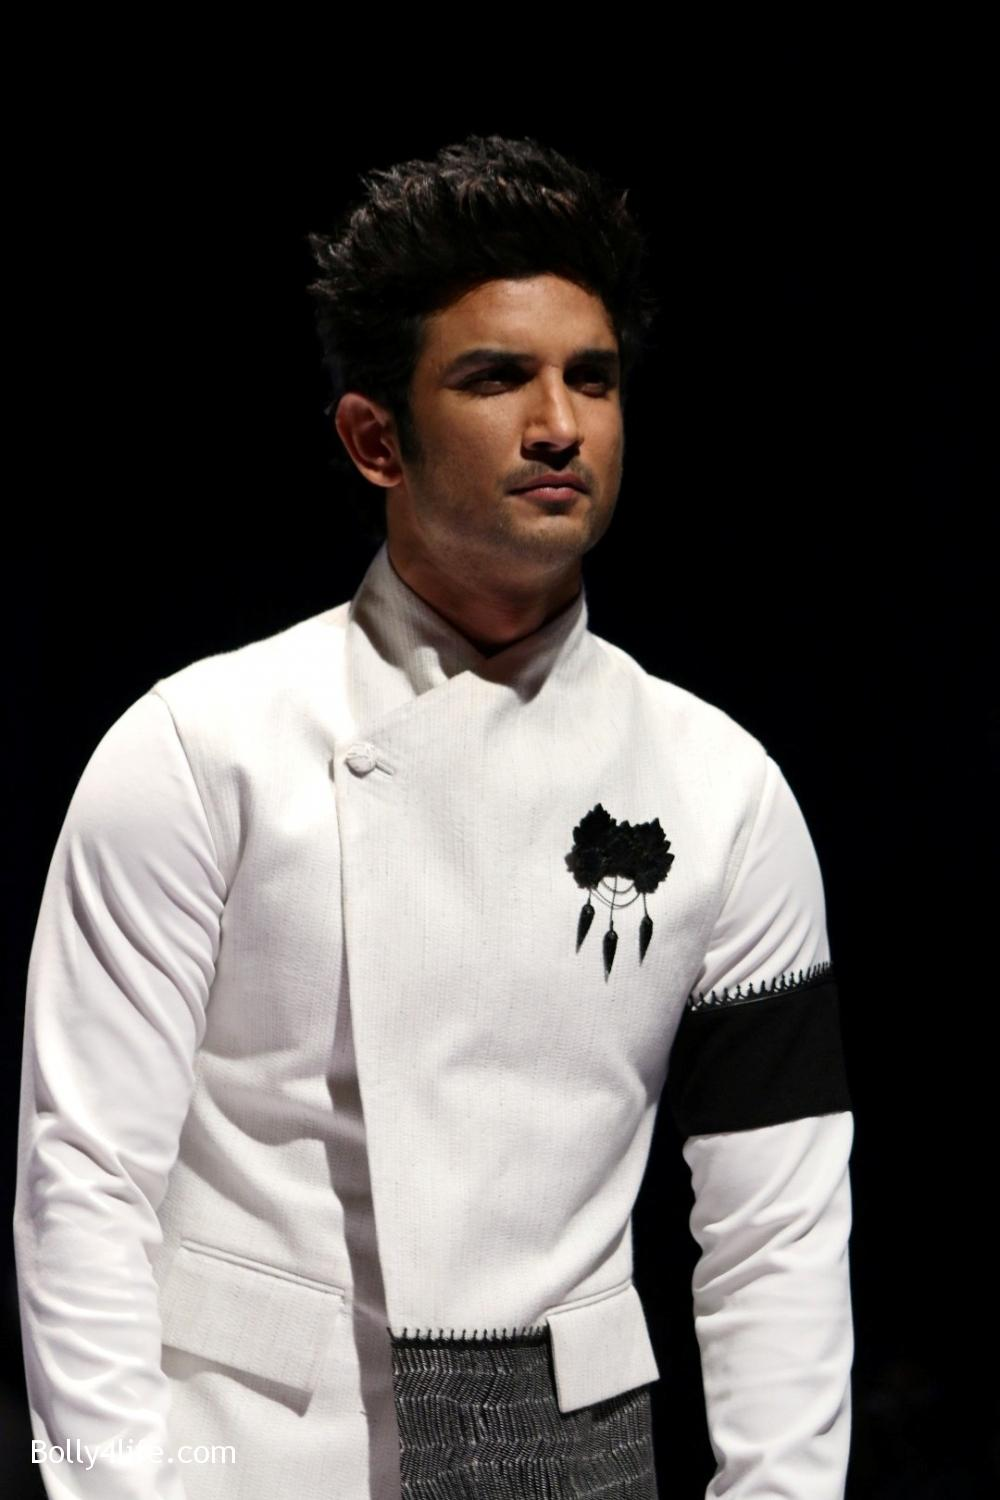 Sushant-Singh-Rajput-during-the-Van-Heusen-GQ-Fashion-Nights-in-Mumbai-2.jpg